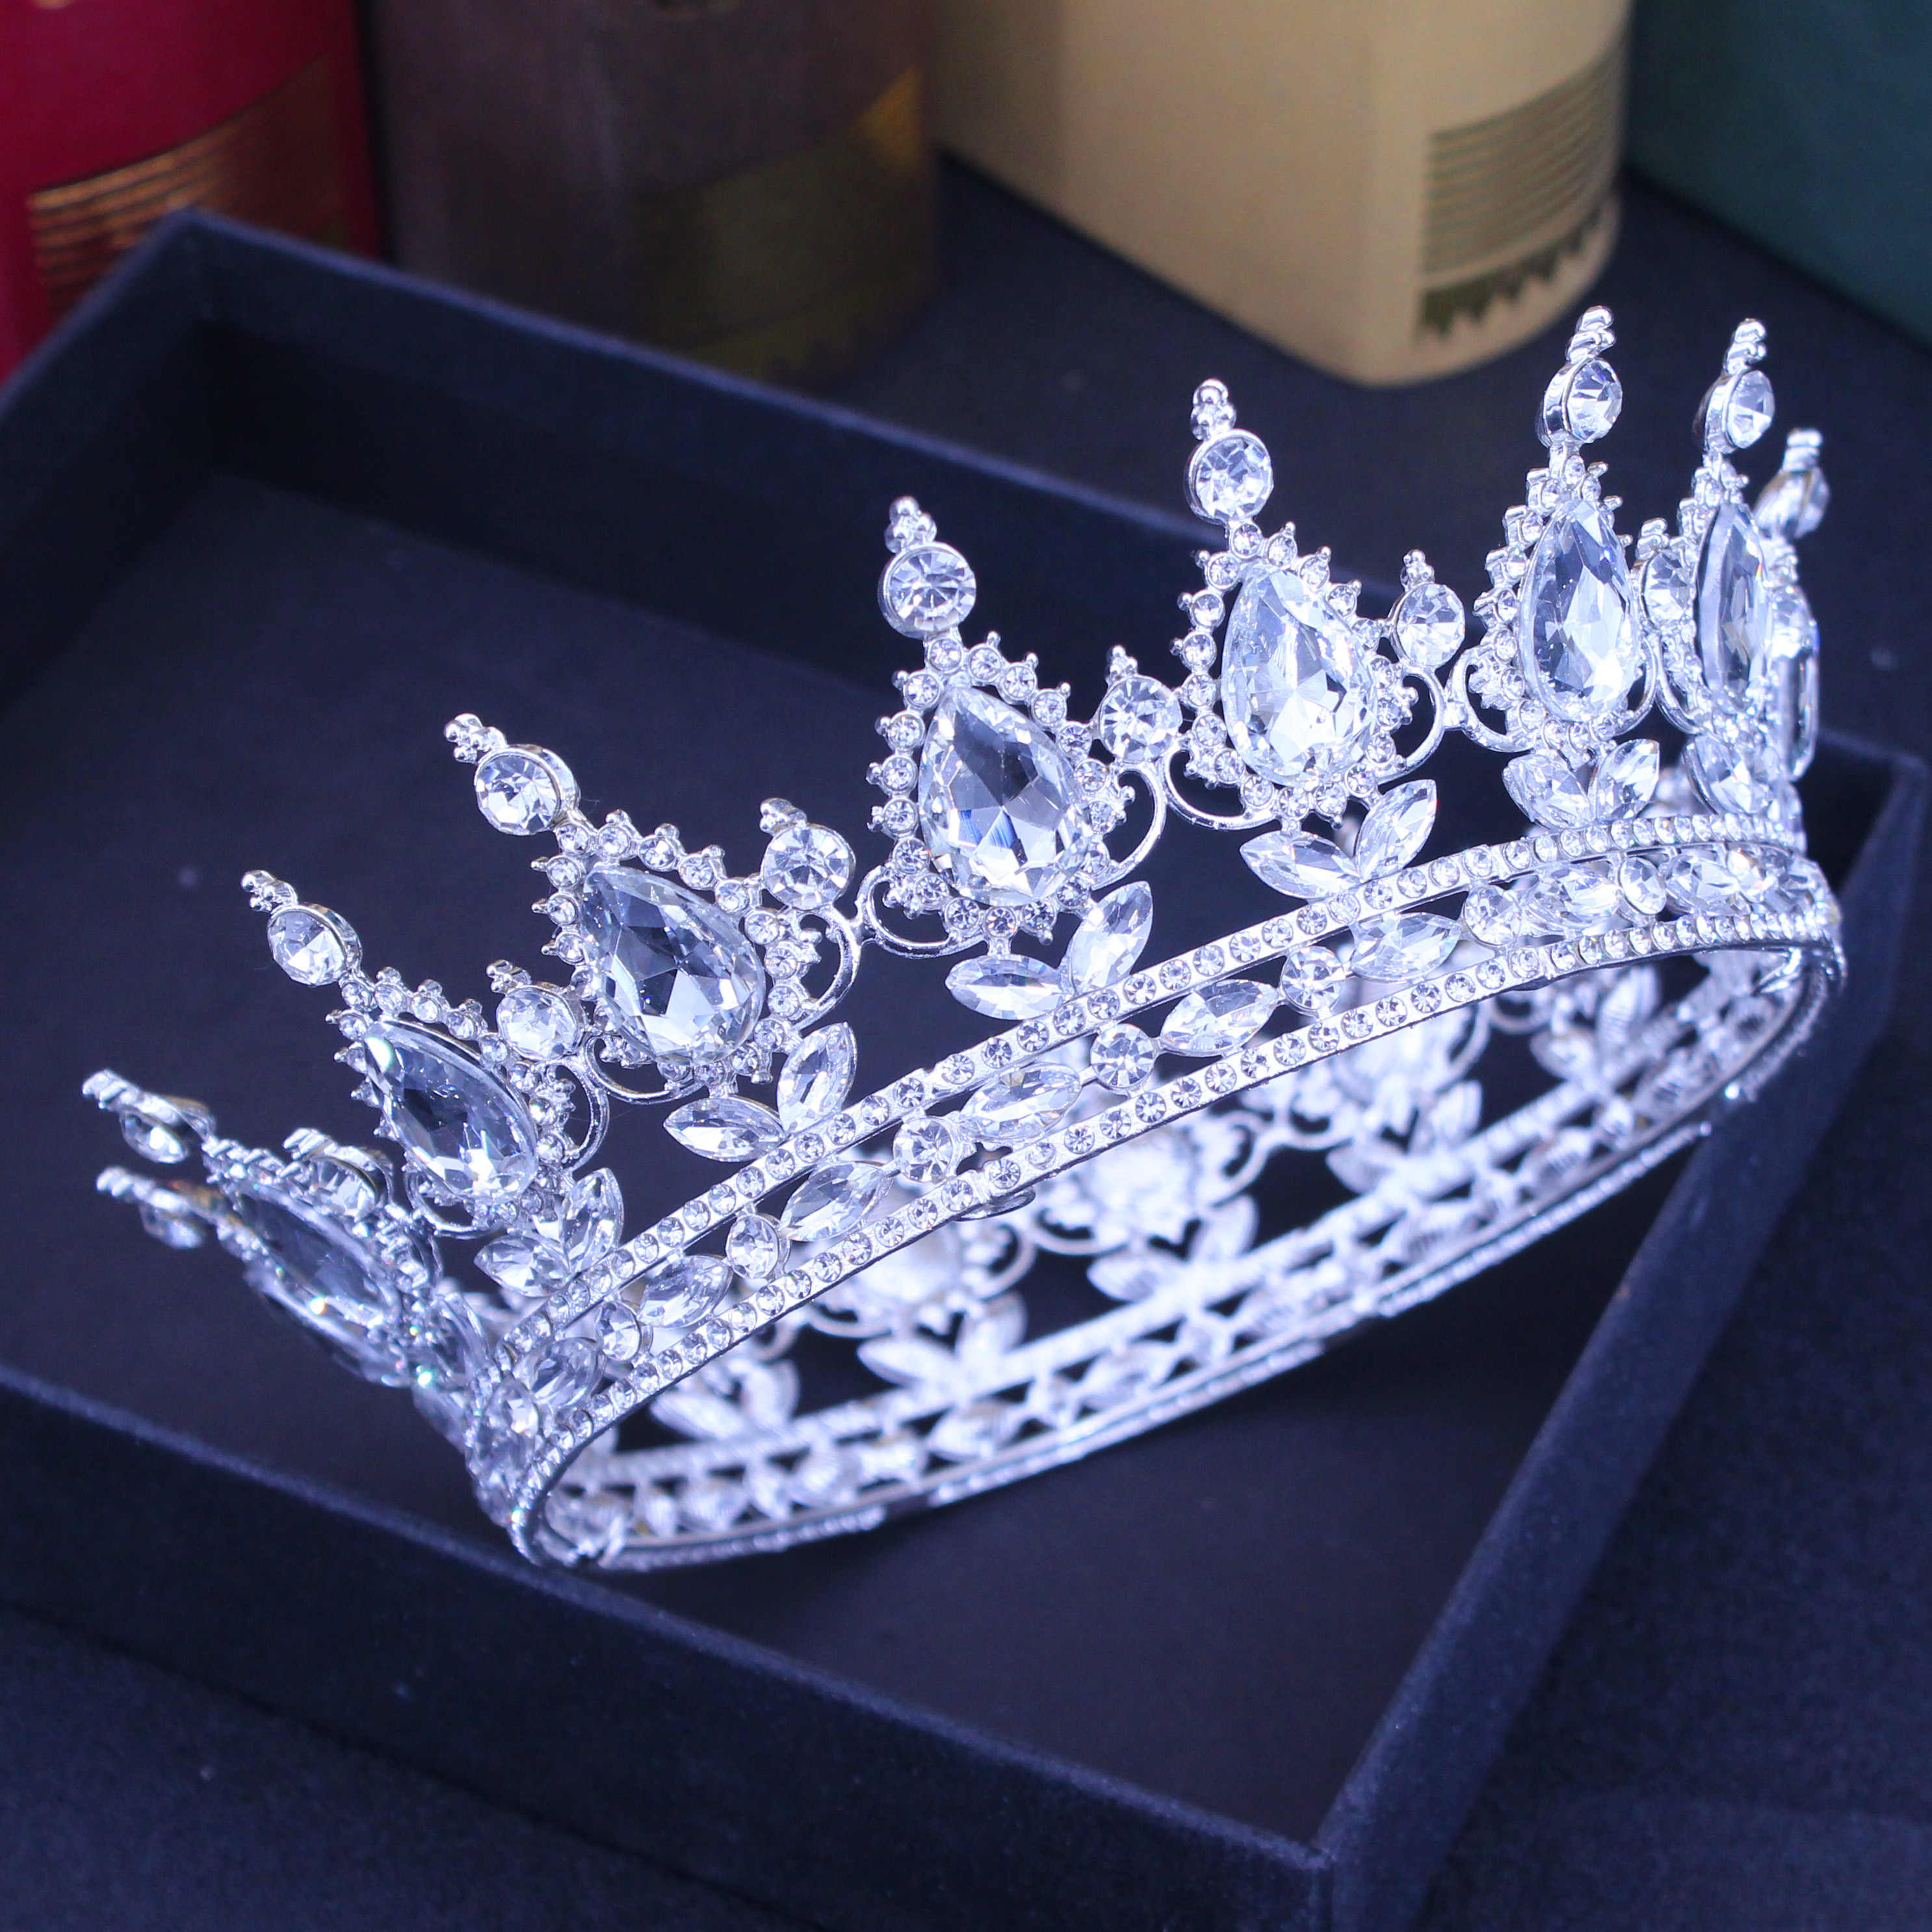 Queen Re Wedding Tiara Crown Vintage Nuziale Di Cristallo Diadema Donne/Uomini Ornamenti Per Capelli di Strass Sposa Accessori Gioielli Testa